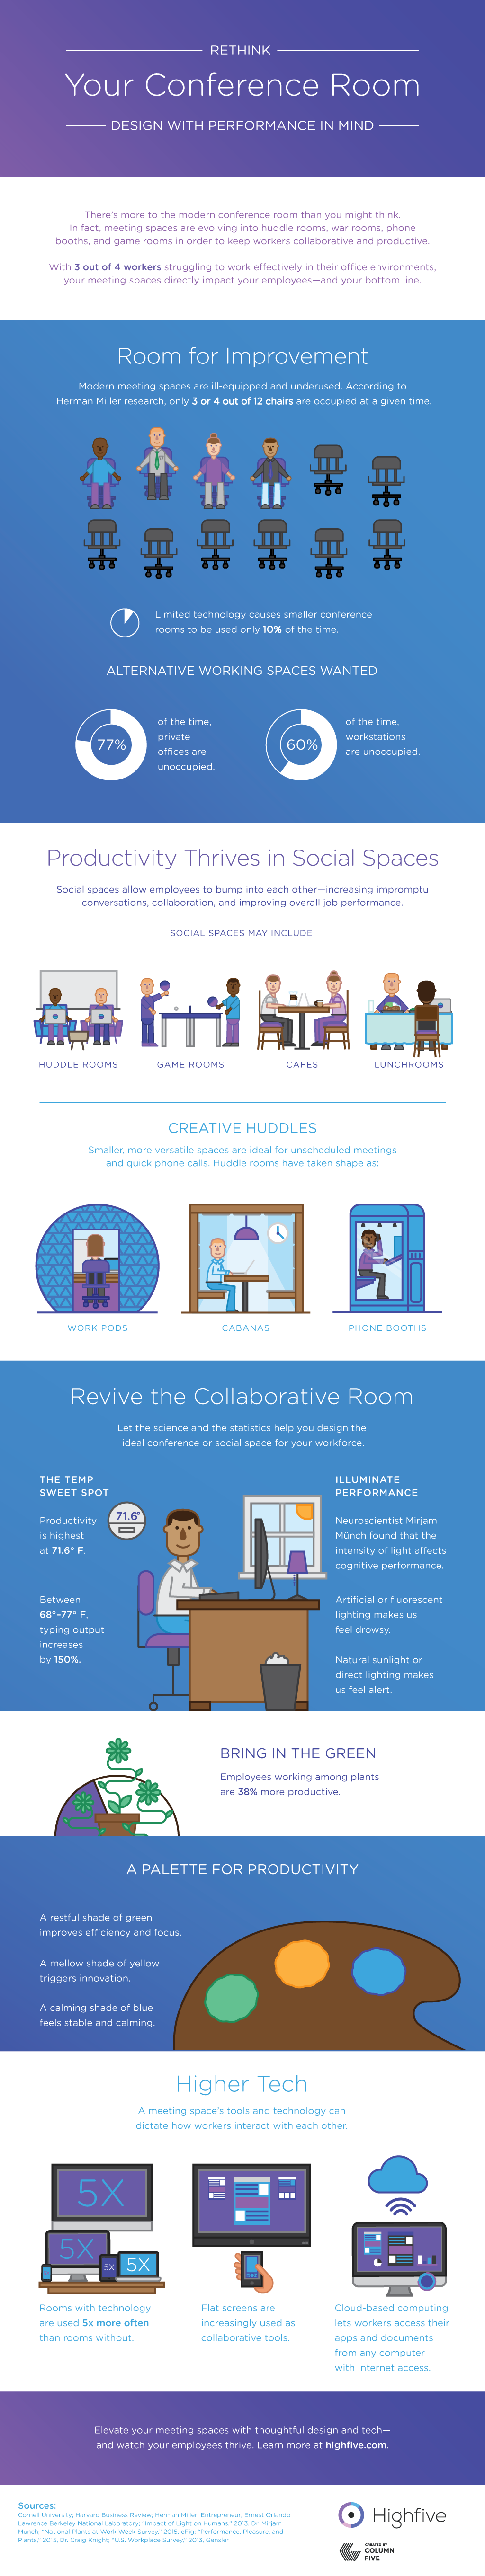 Highfive_Conference-Room-Infographic